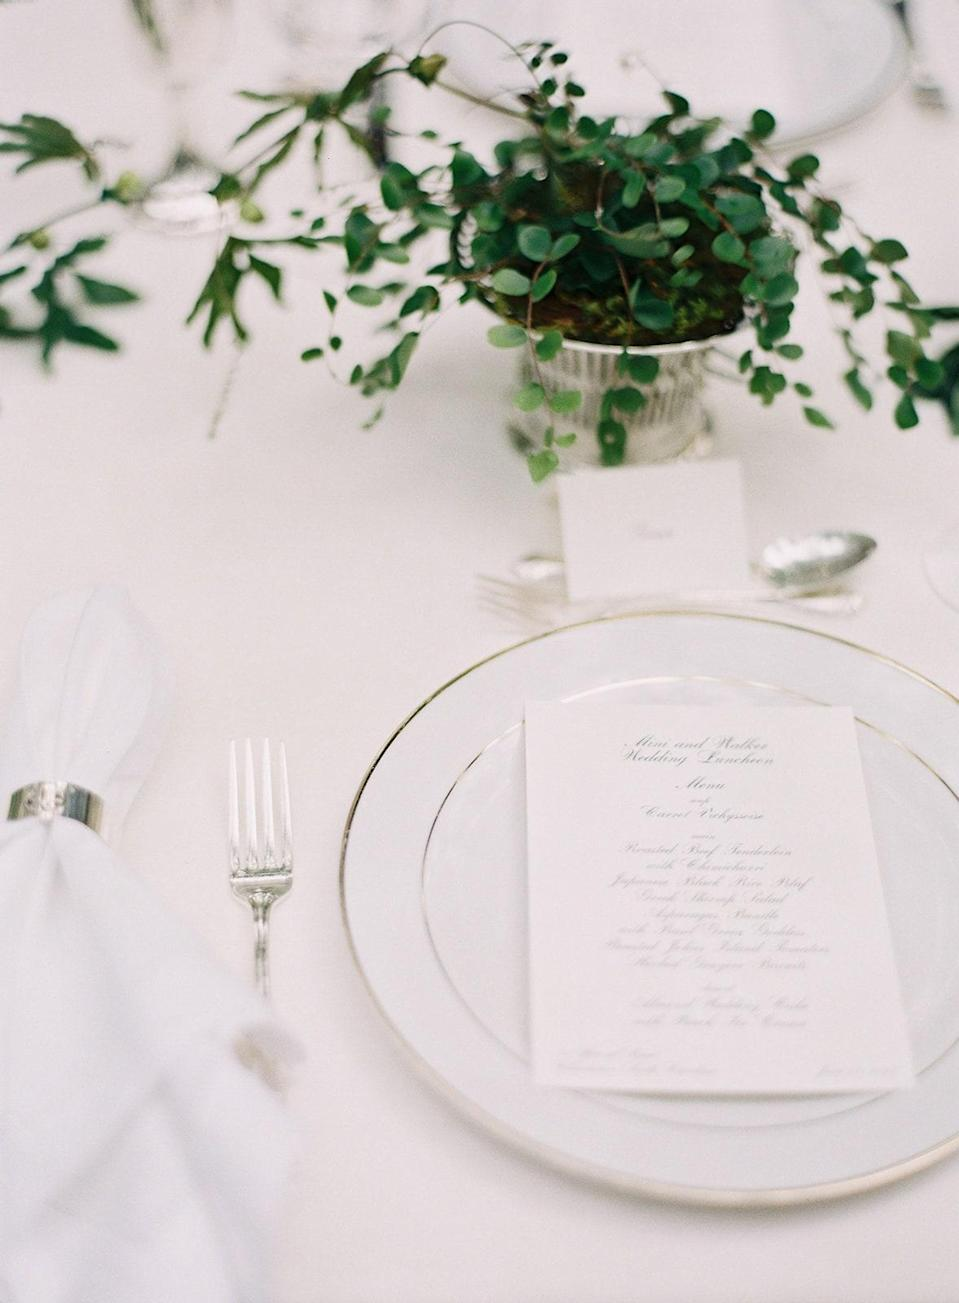 I loved keeping the table setting simple, using white linen and silver and then mixing greenery and flowers to create little mini arrangements.